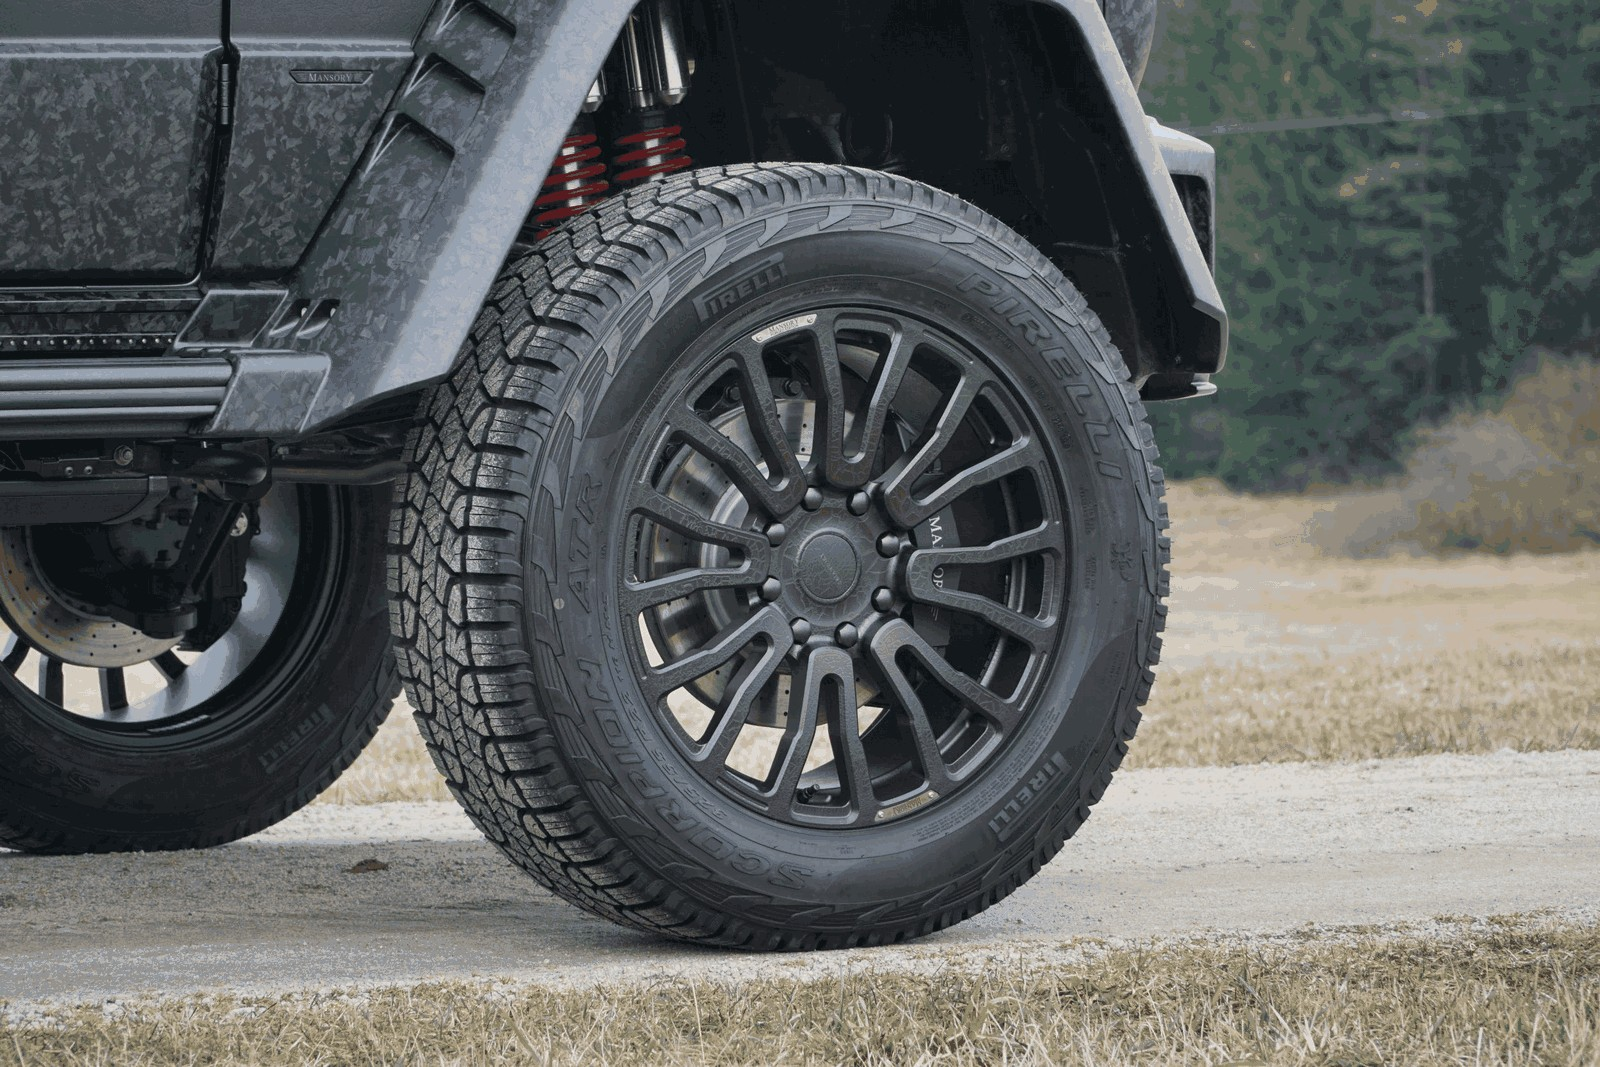 Mansory M8 4x4 Fully Forged Wheel For G Class 4 4 Gwagenparts Com Mercedes G Class Parts